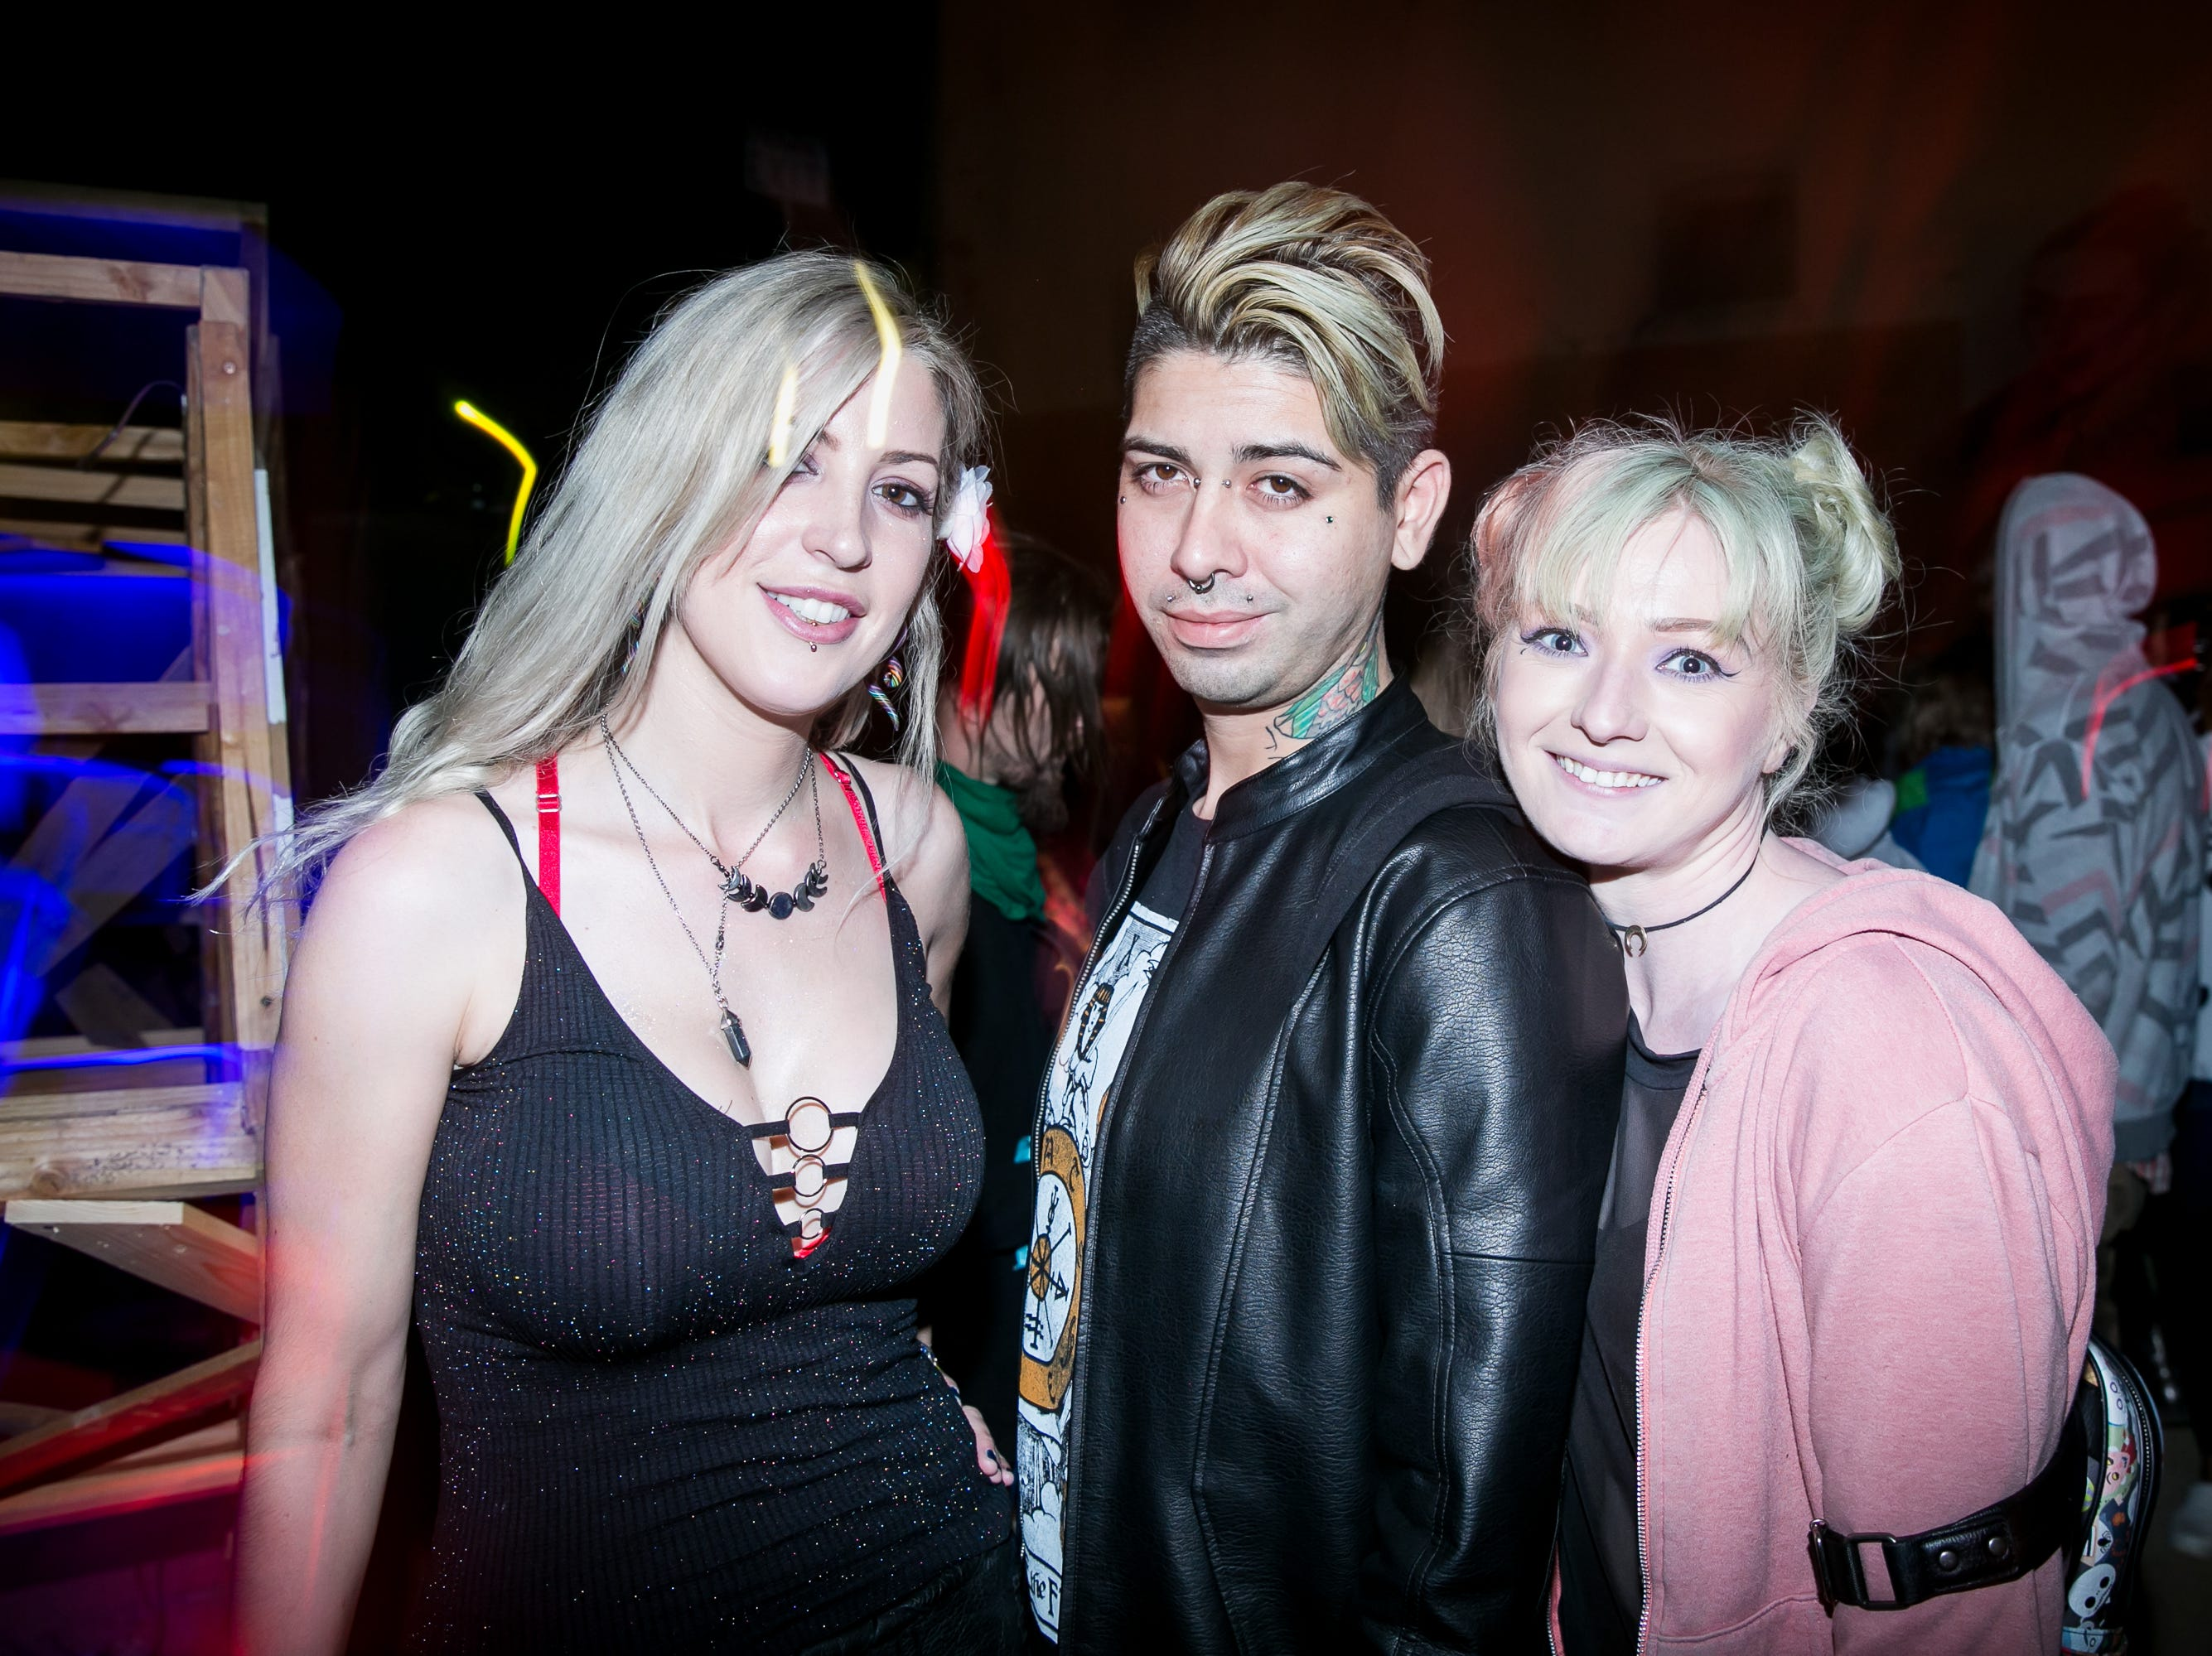 Great times were had at the Full Moon Festival at the Pressroom on March 23, 2019.